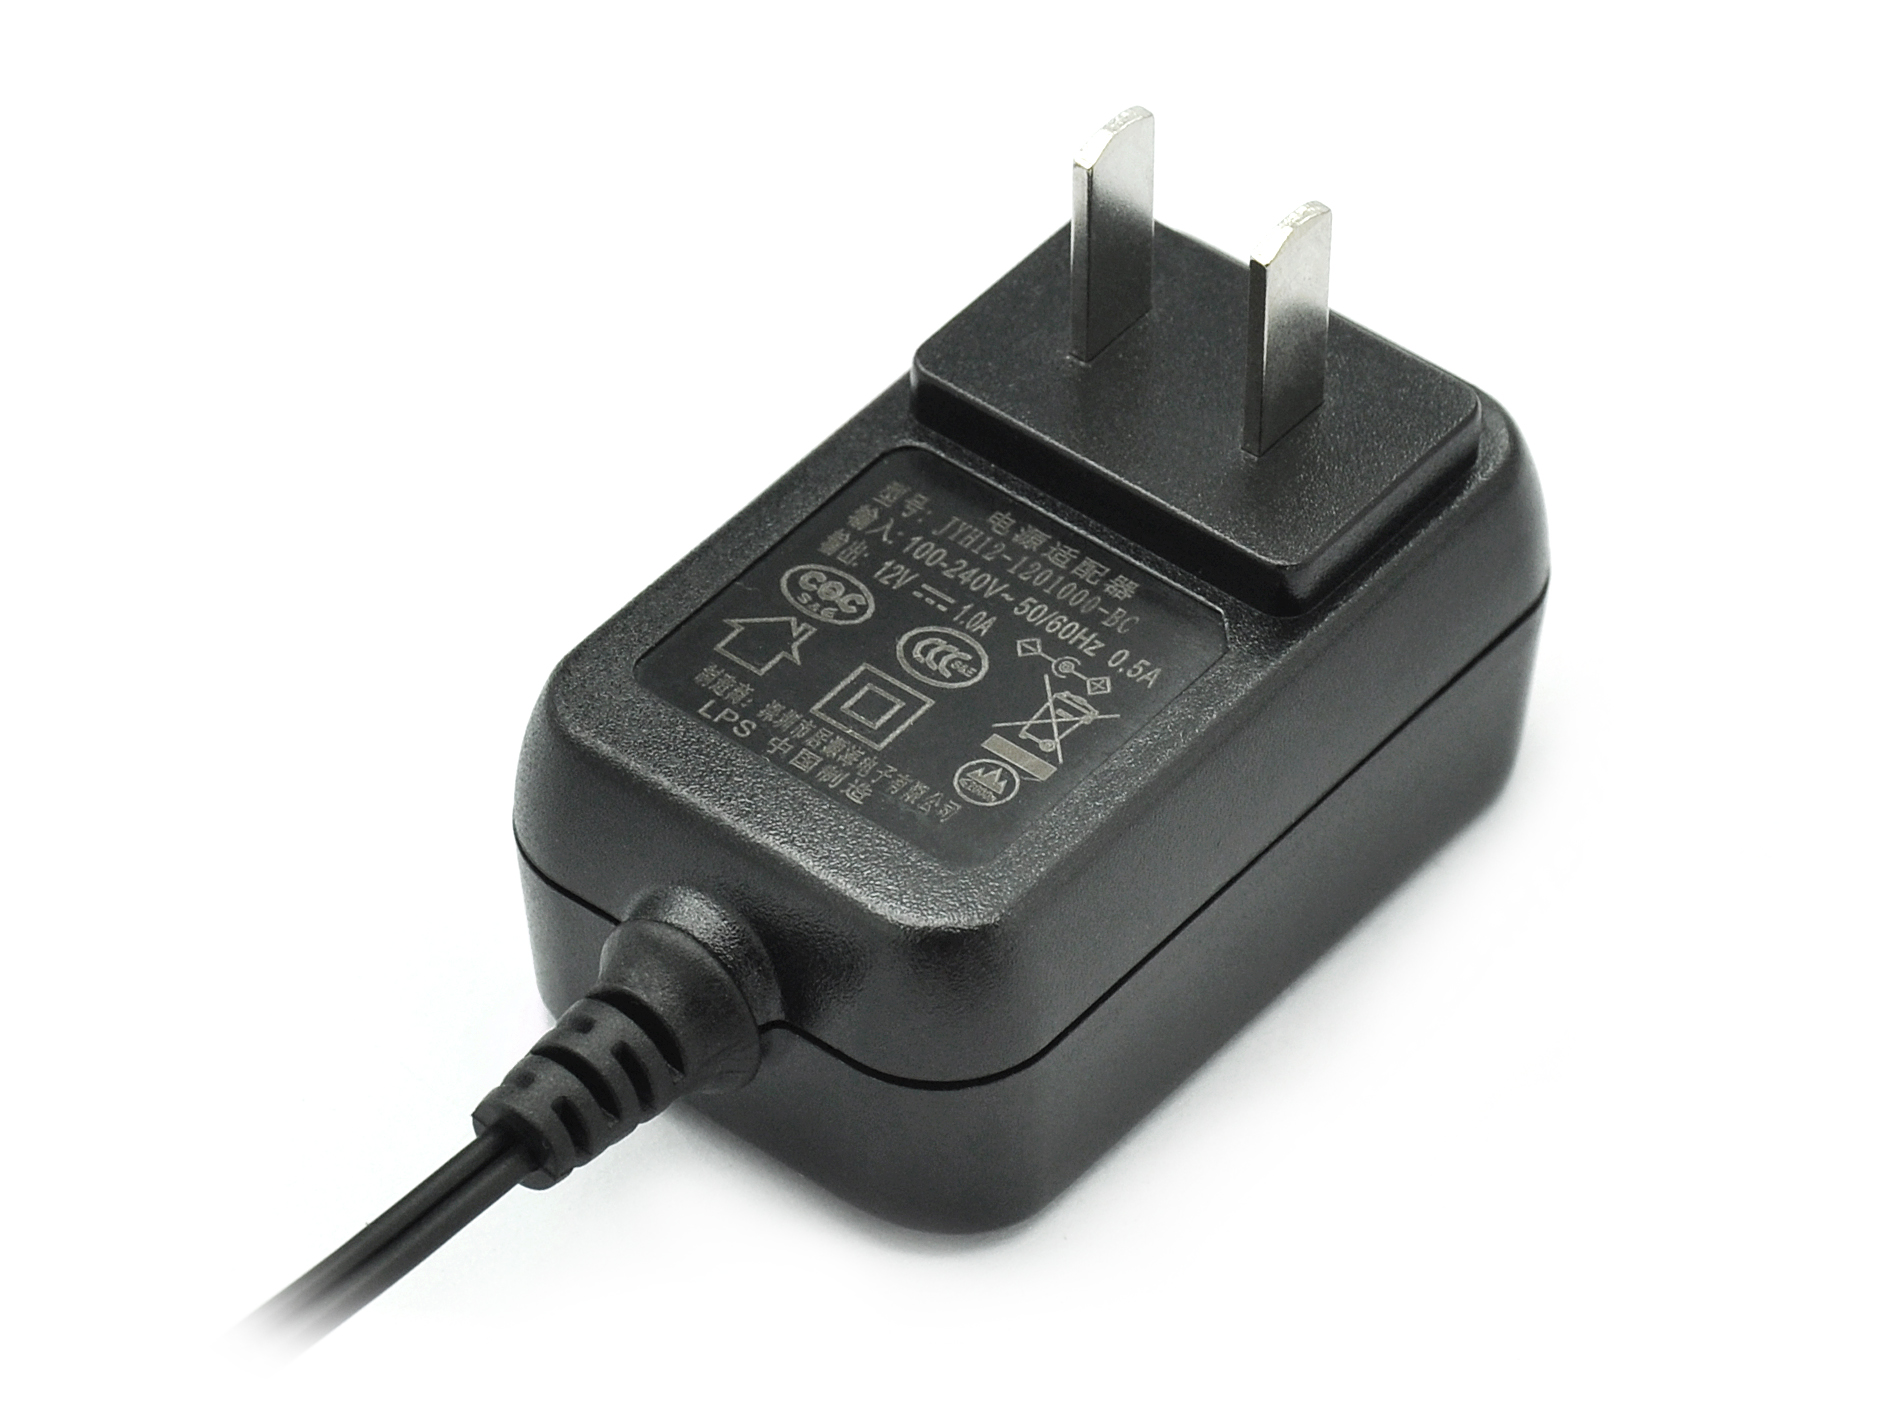 12V 1A 24V 0.5A Switching Power Adapter Chinese Plug